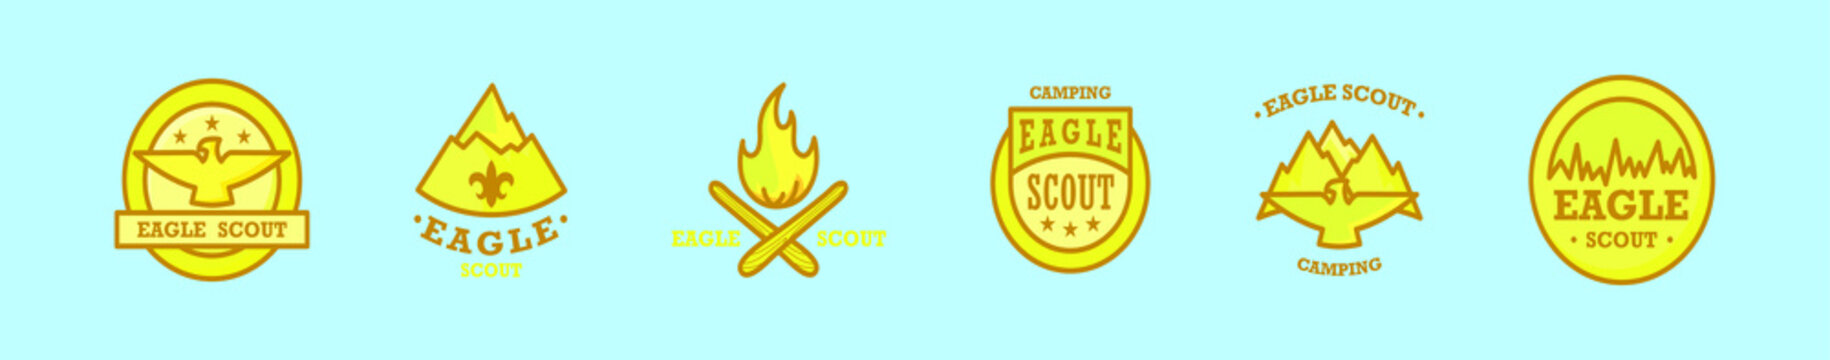 set of eagle scout badge cartoon icon design template with various models. vector illustration isolated on blue background